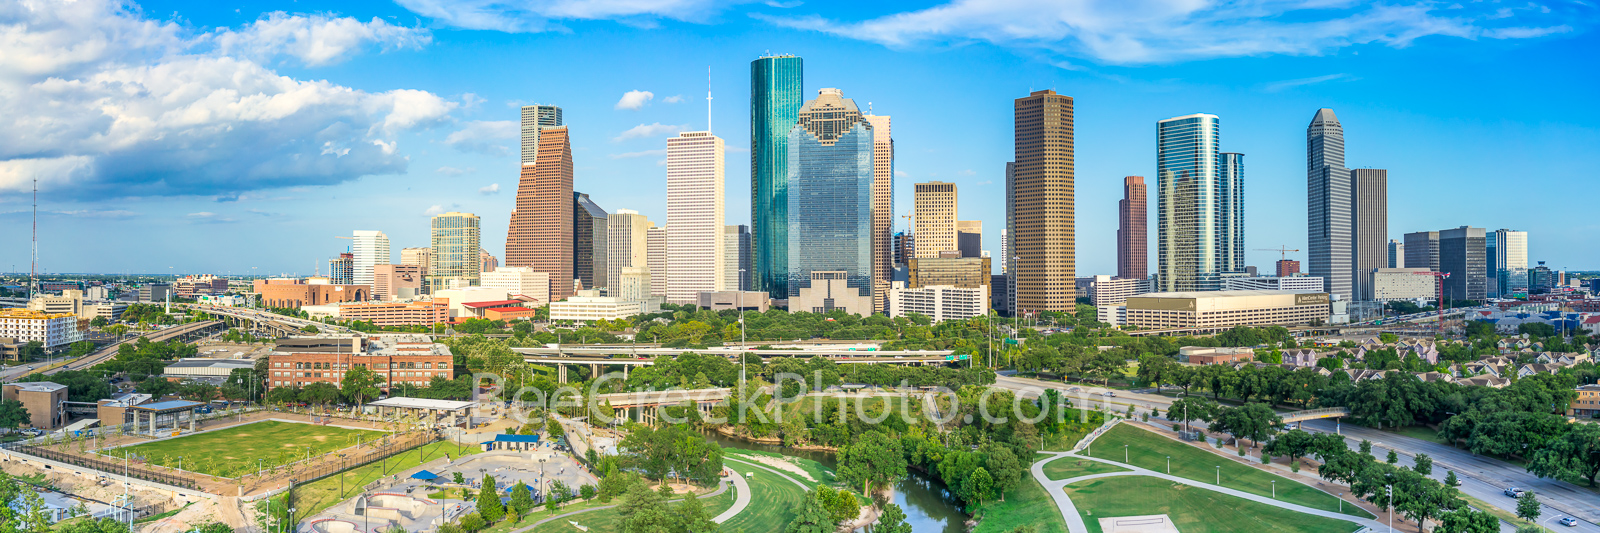 Houston skyline, city of houston, downtown houston, houston texas, buffalo bayou, skyline of houston, Eleanor Tinsley Park, images of houston, houston city, houston tx, houston life, architecture, , photo